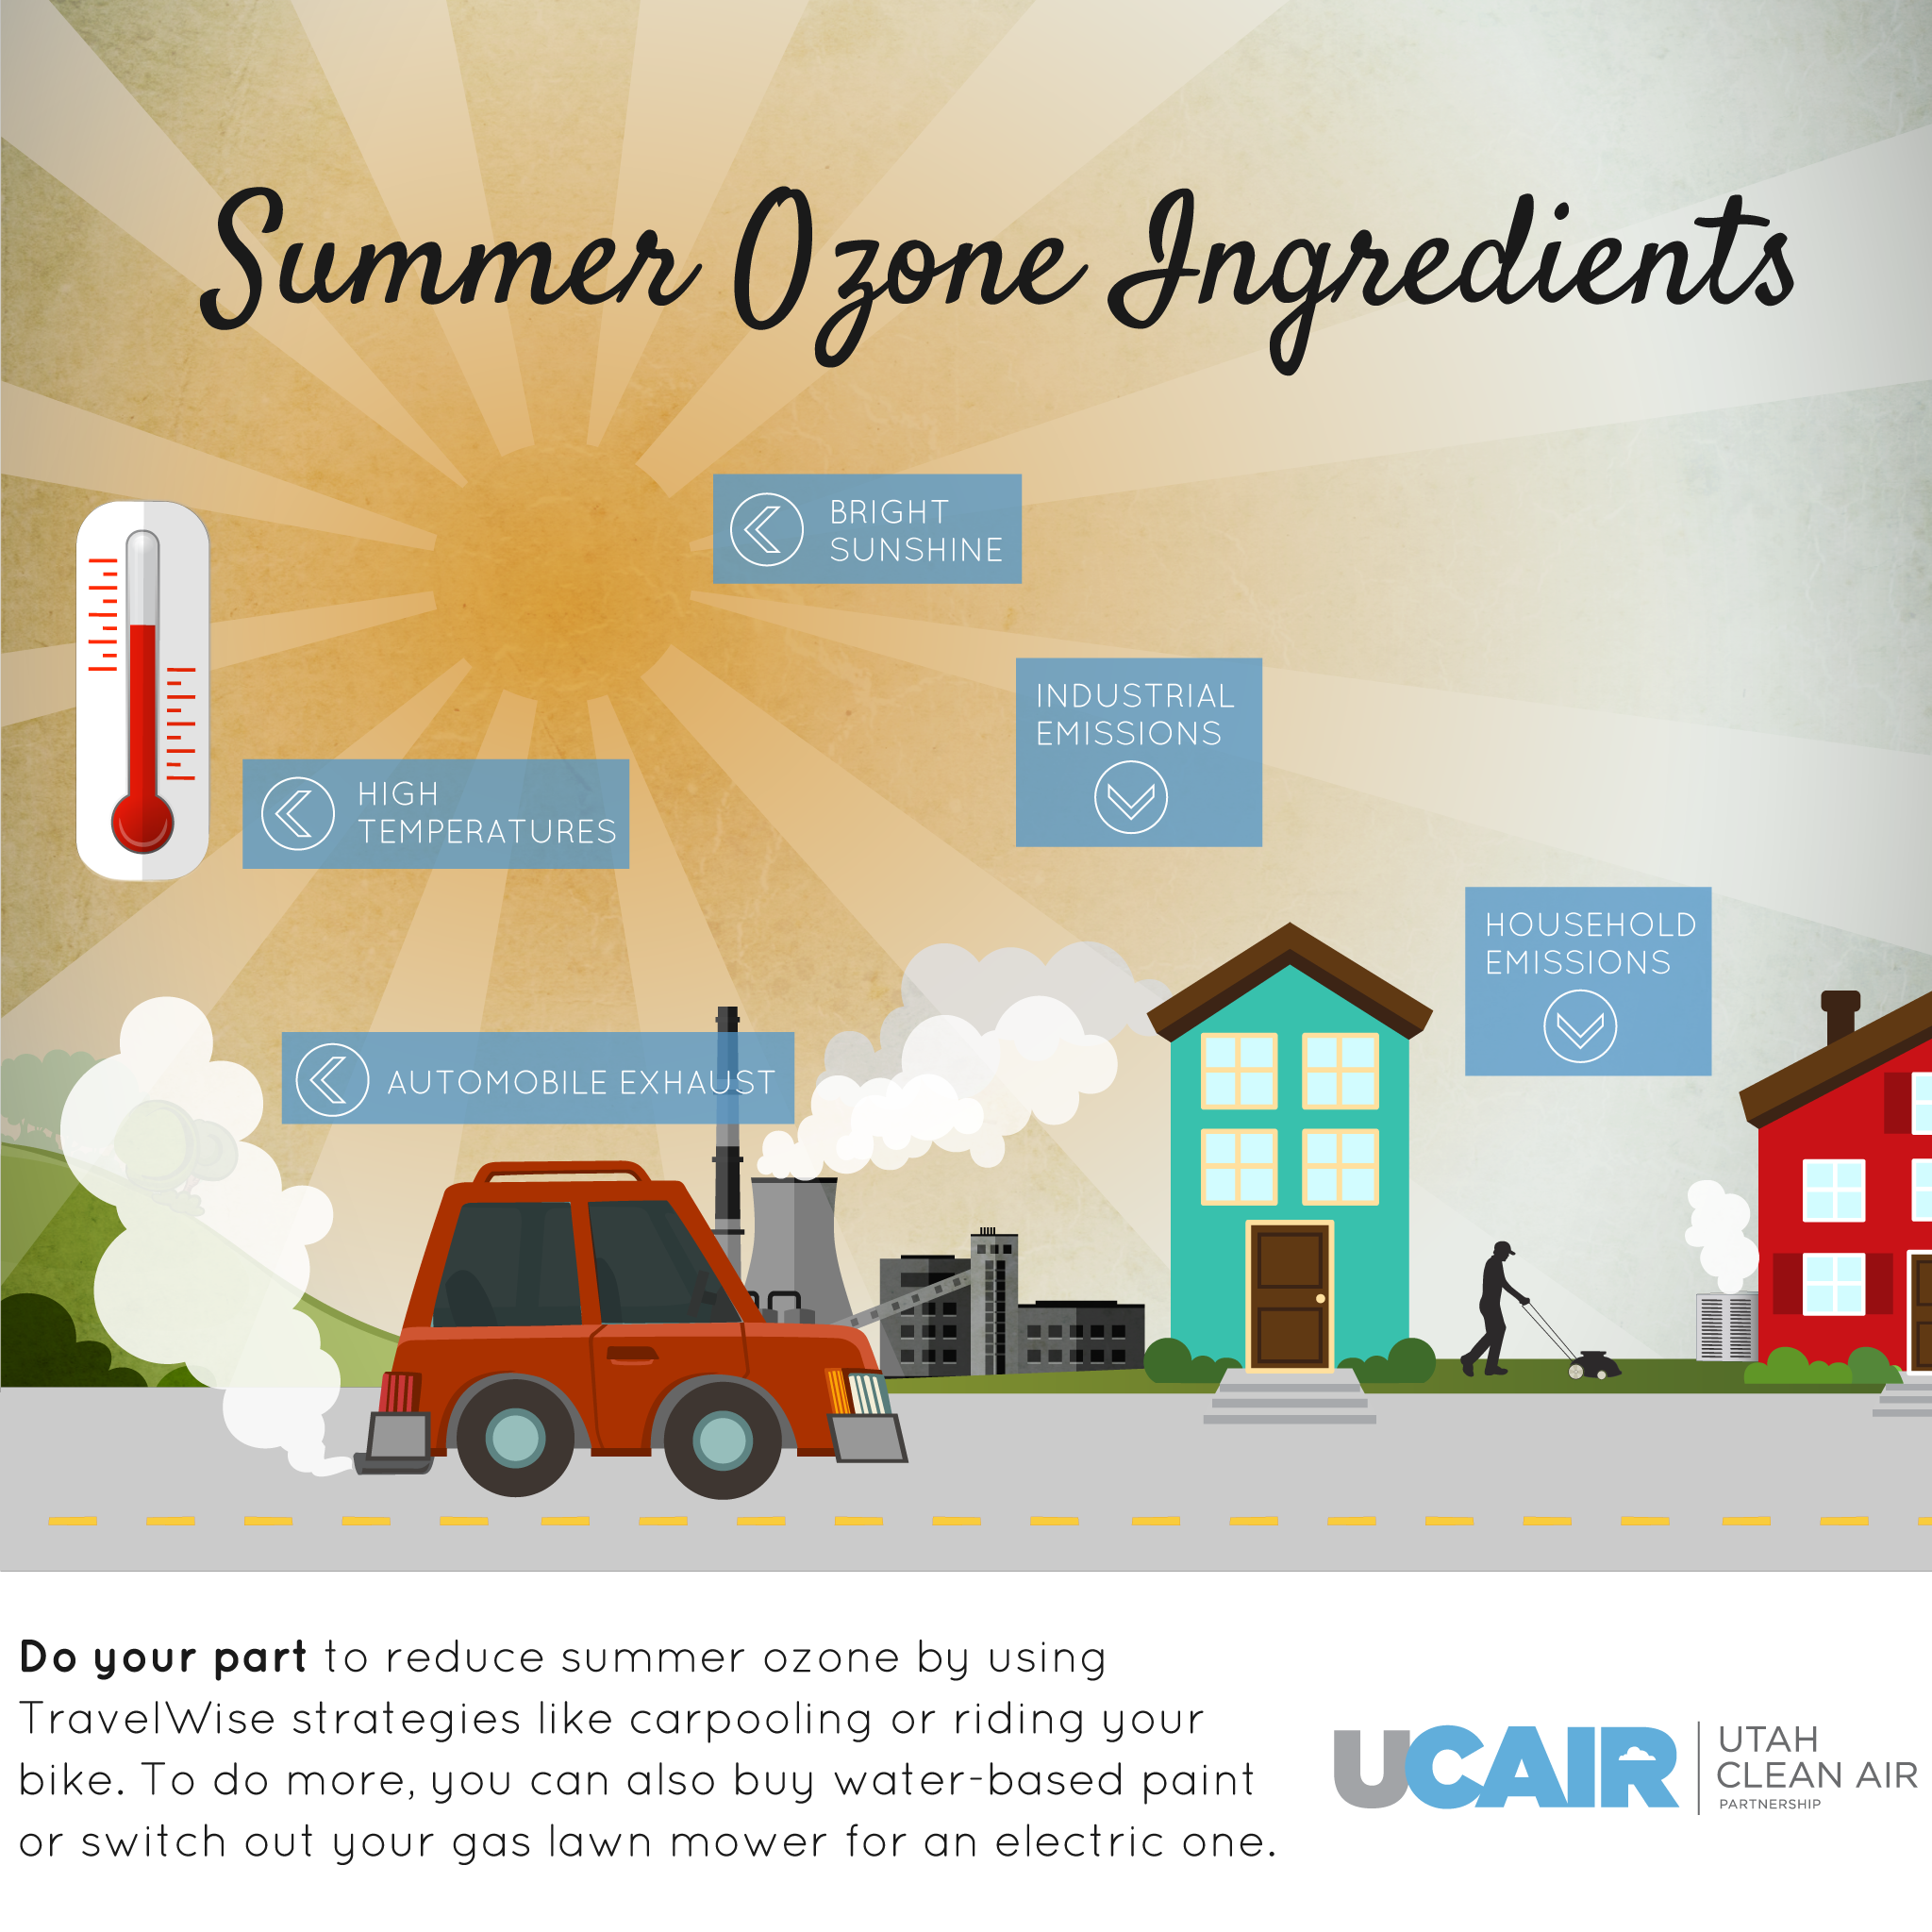 UCAIR_SummerOzoneGraphic